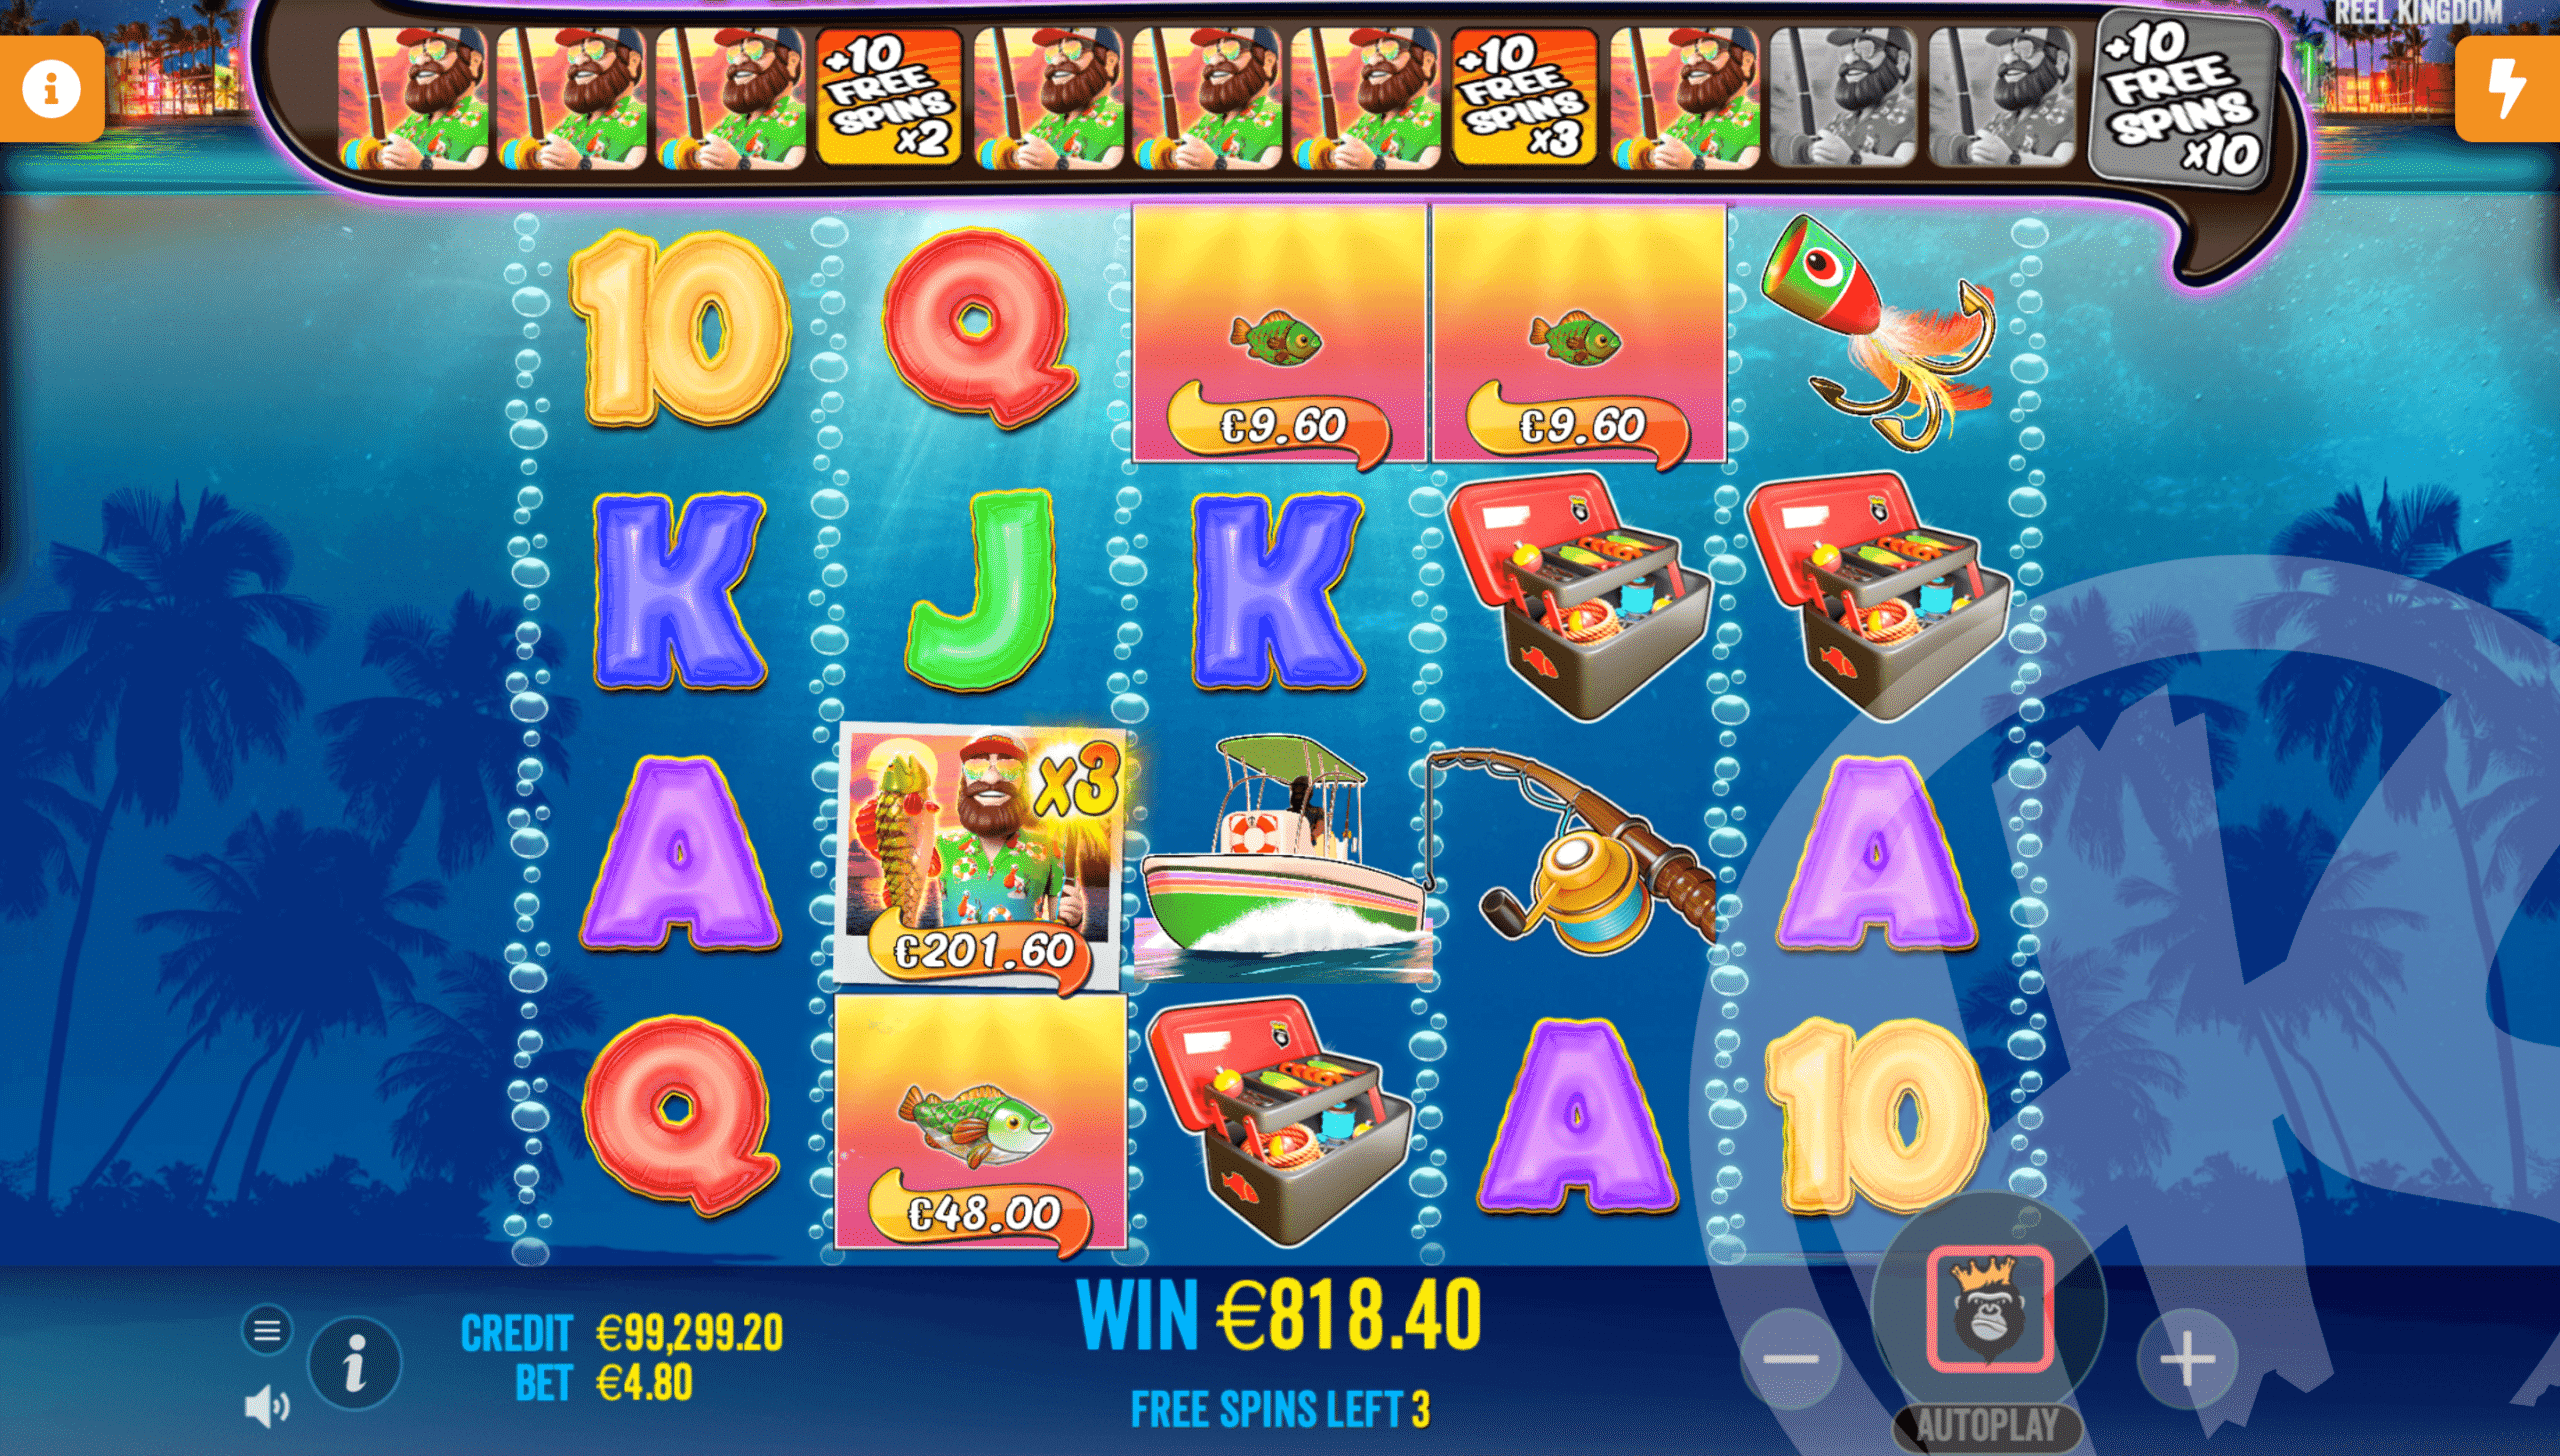 Trigger Additional Free Spins by Collecting Fishermen